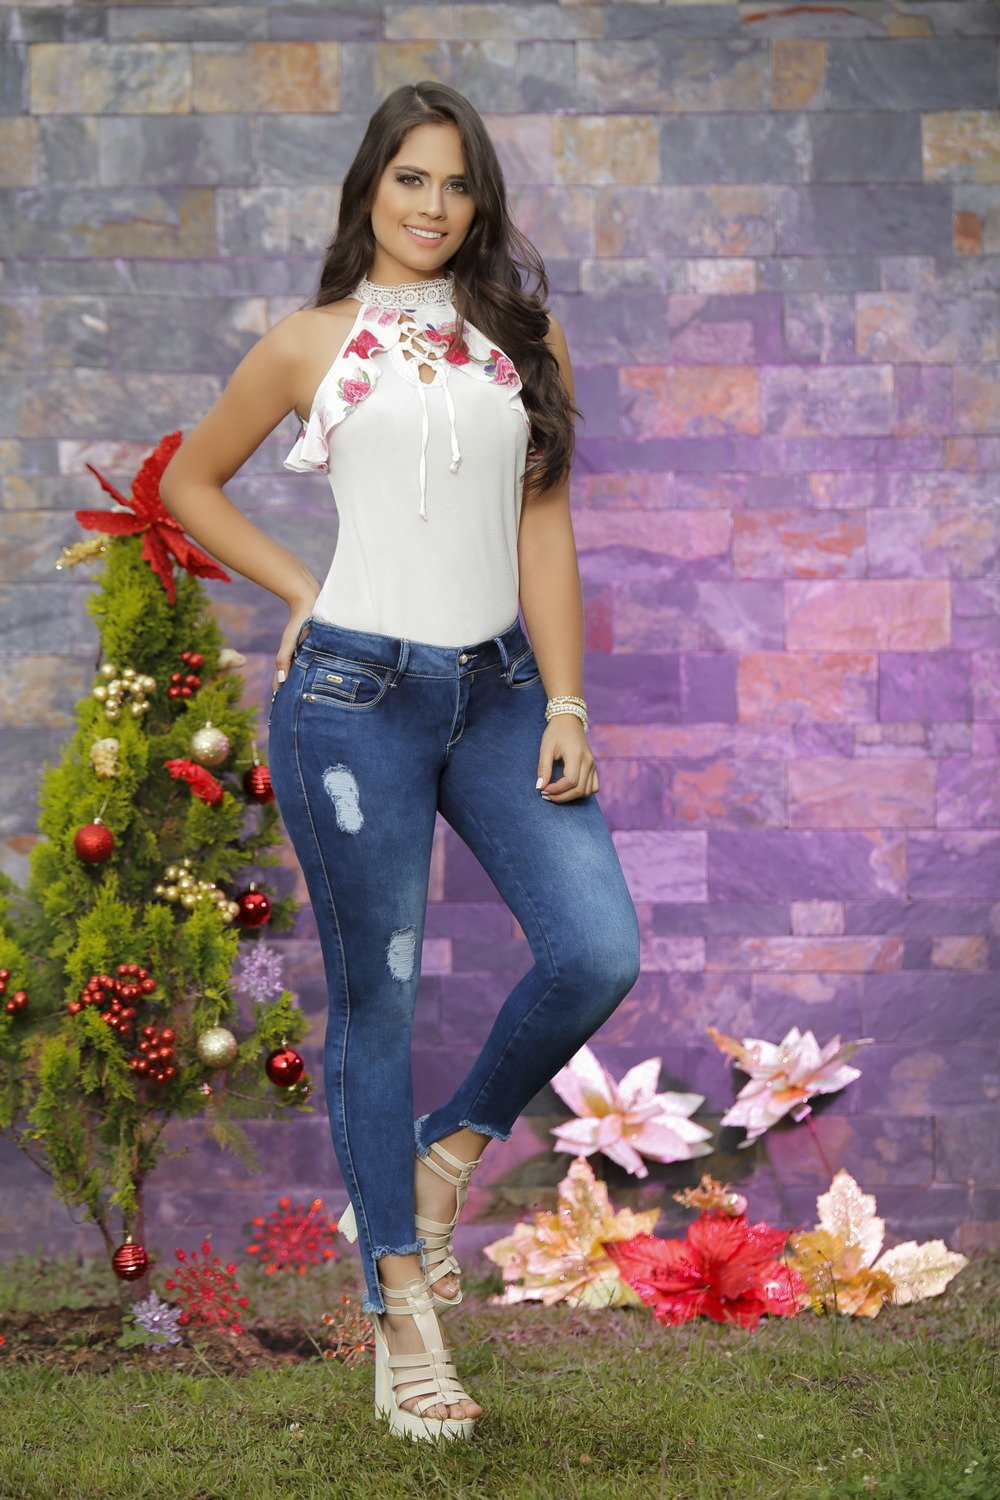 b929752eaf73 Jean Abeto M3162 - Colombia Jeans - Jeans Colombianos Levanta cola ...